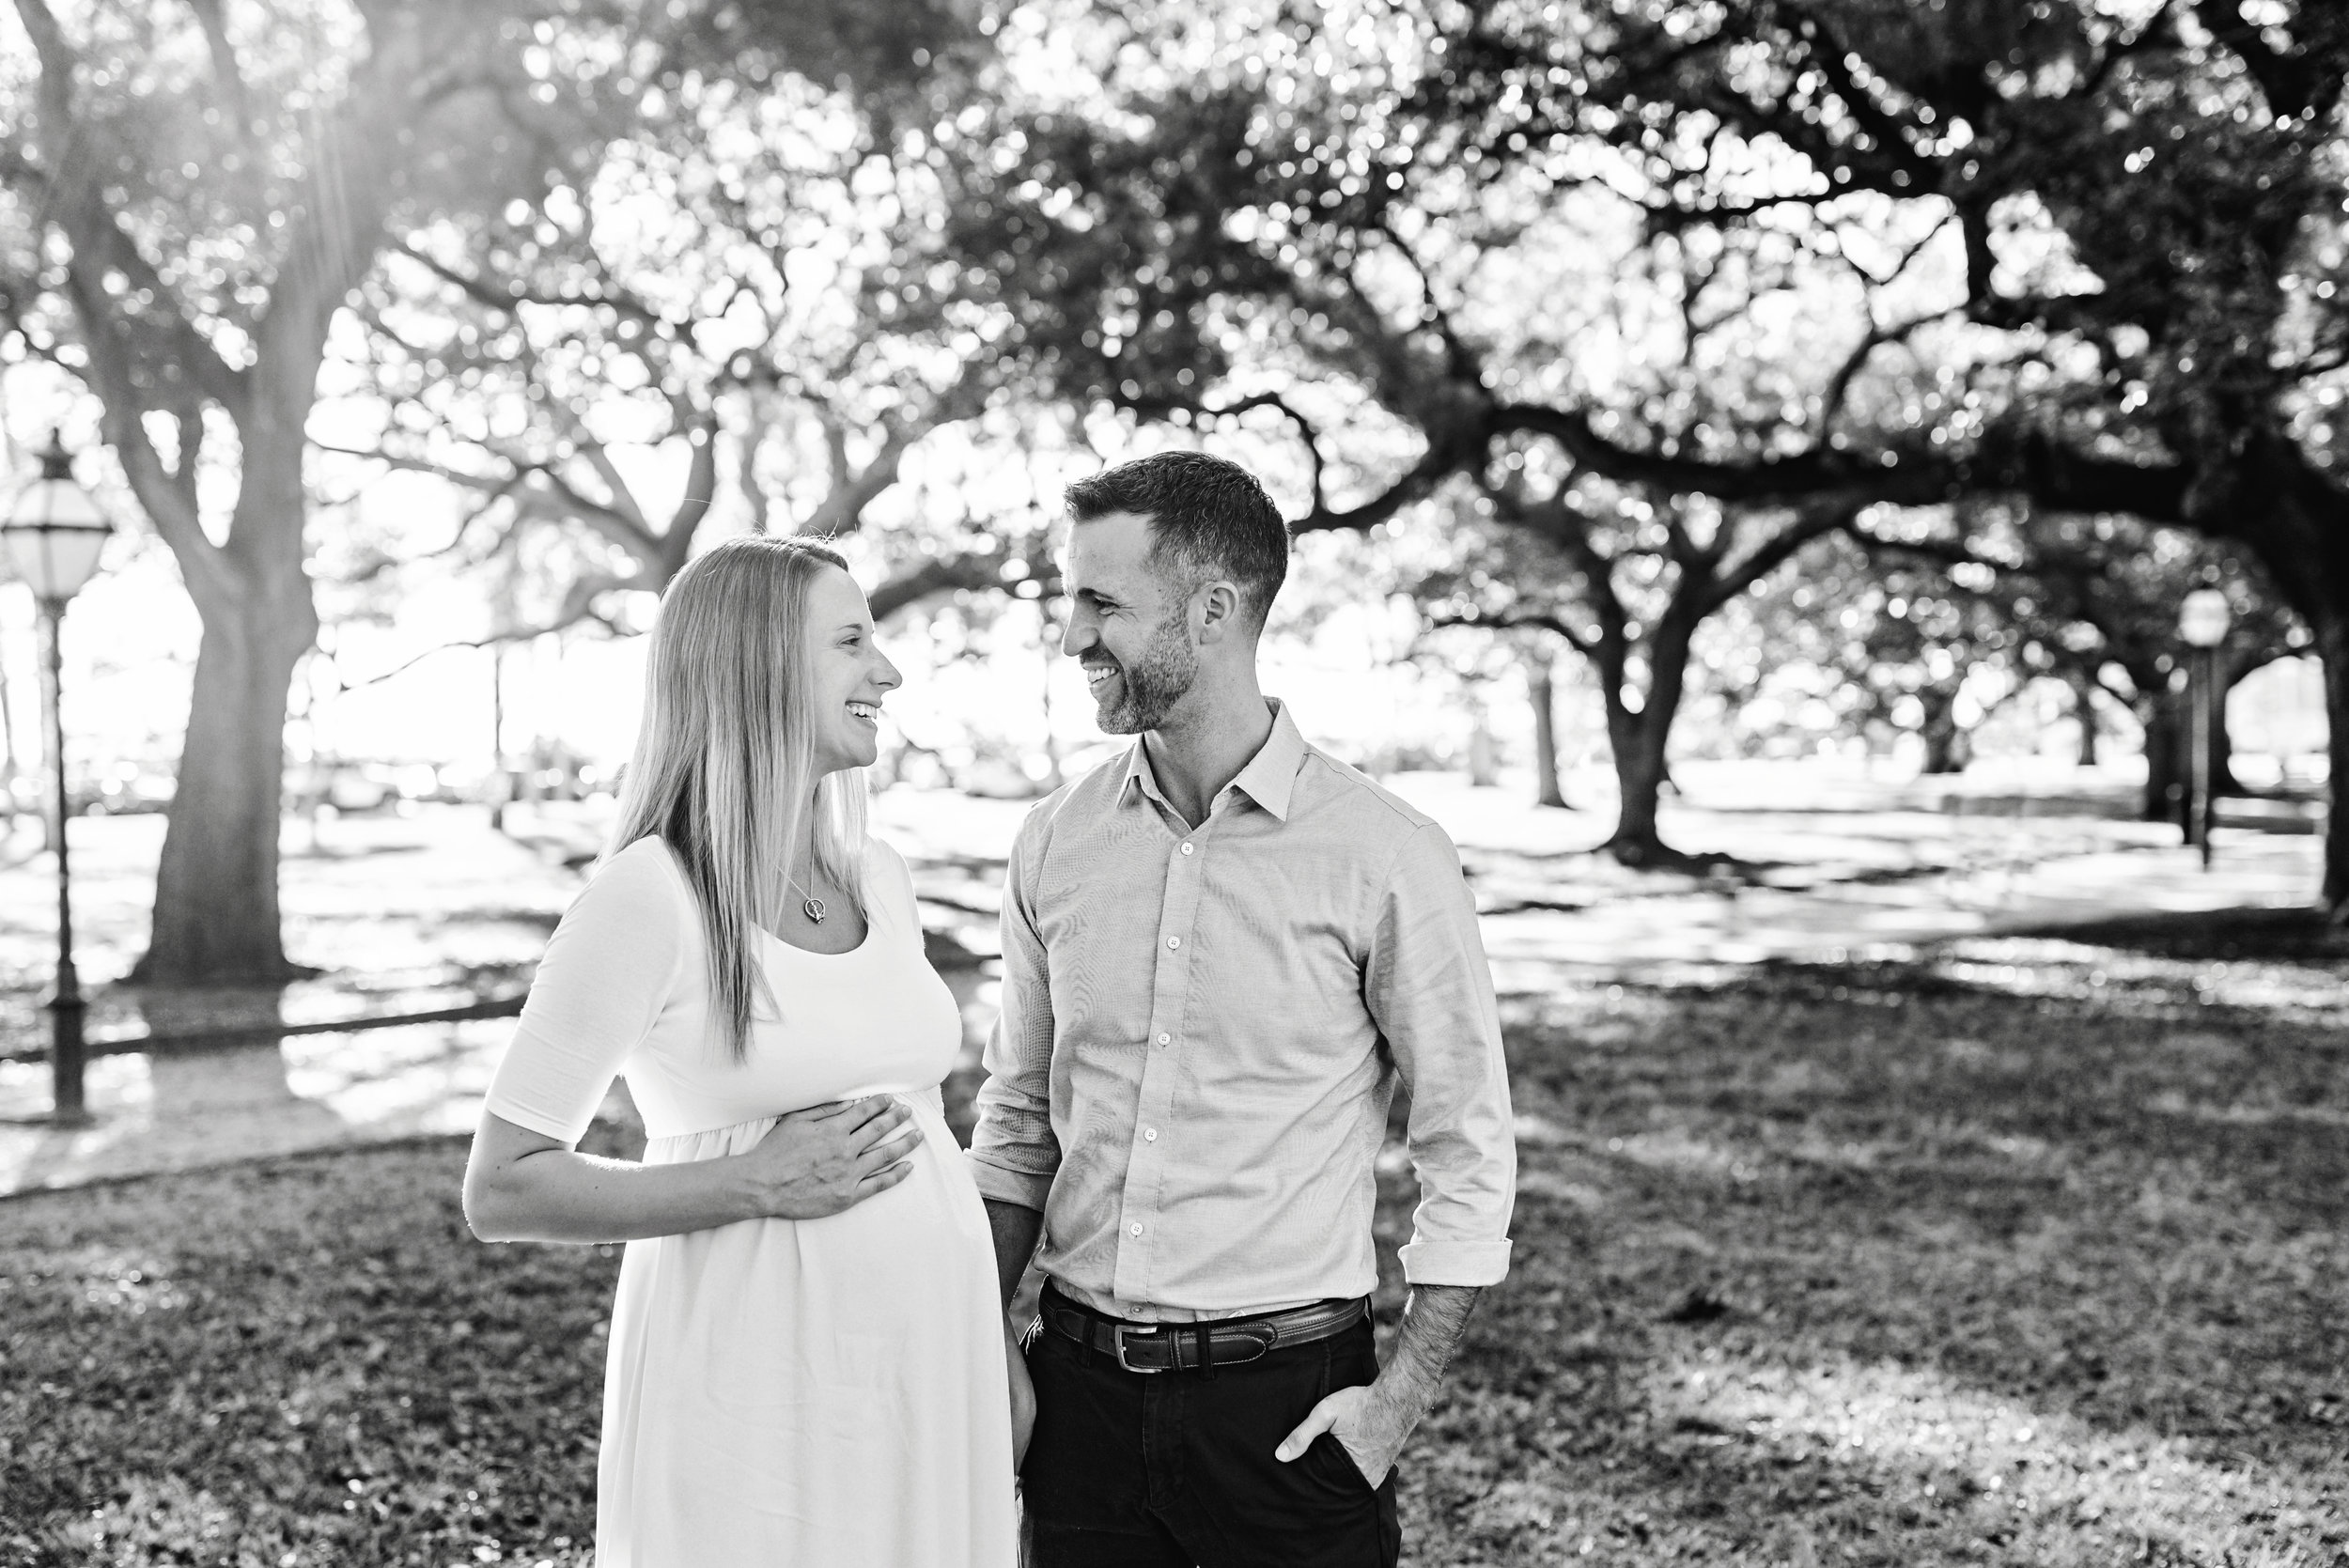 Charleston-Maternity-Photographer-FSP_8001BW copy.jpg